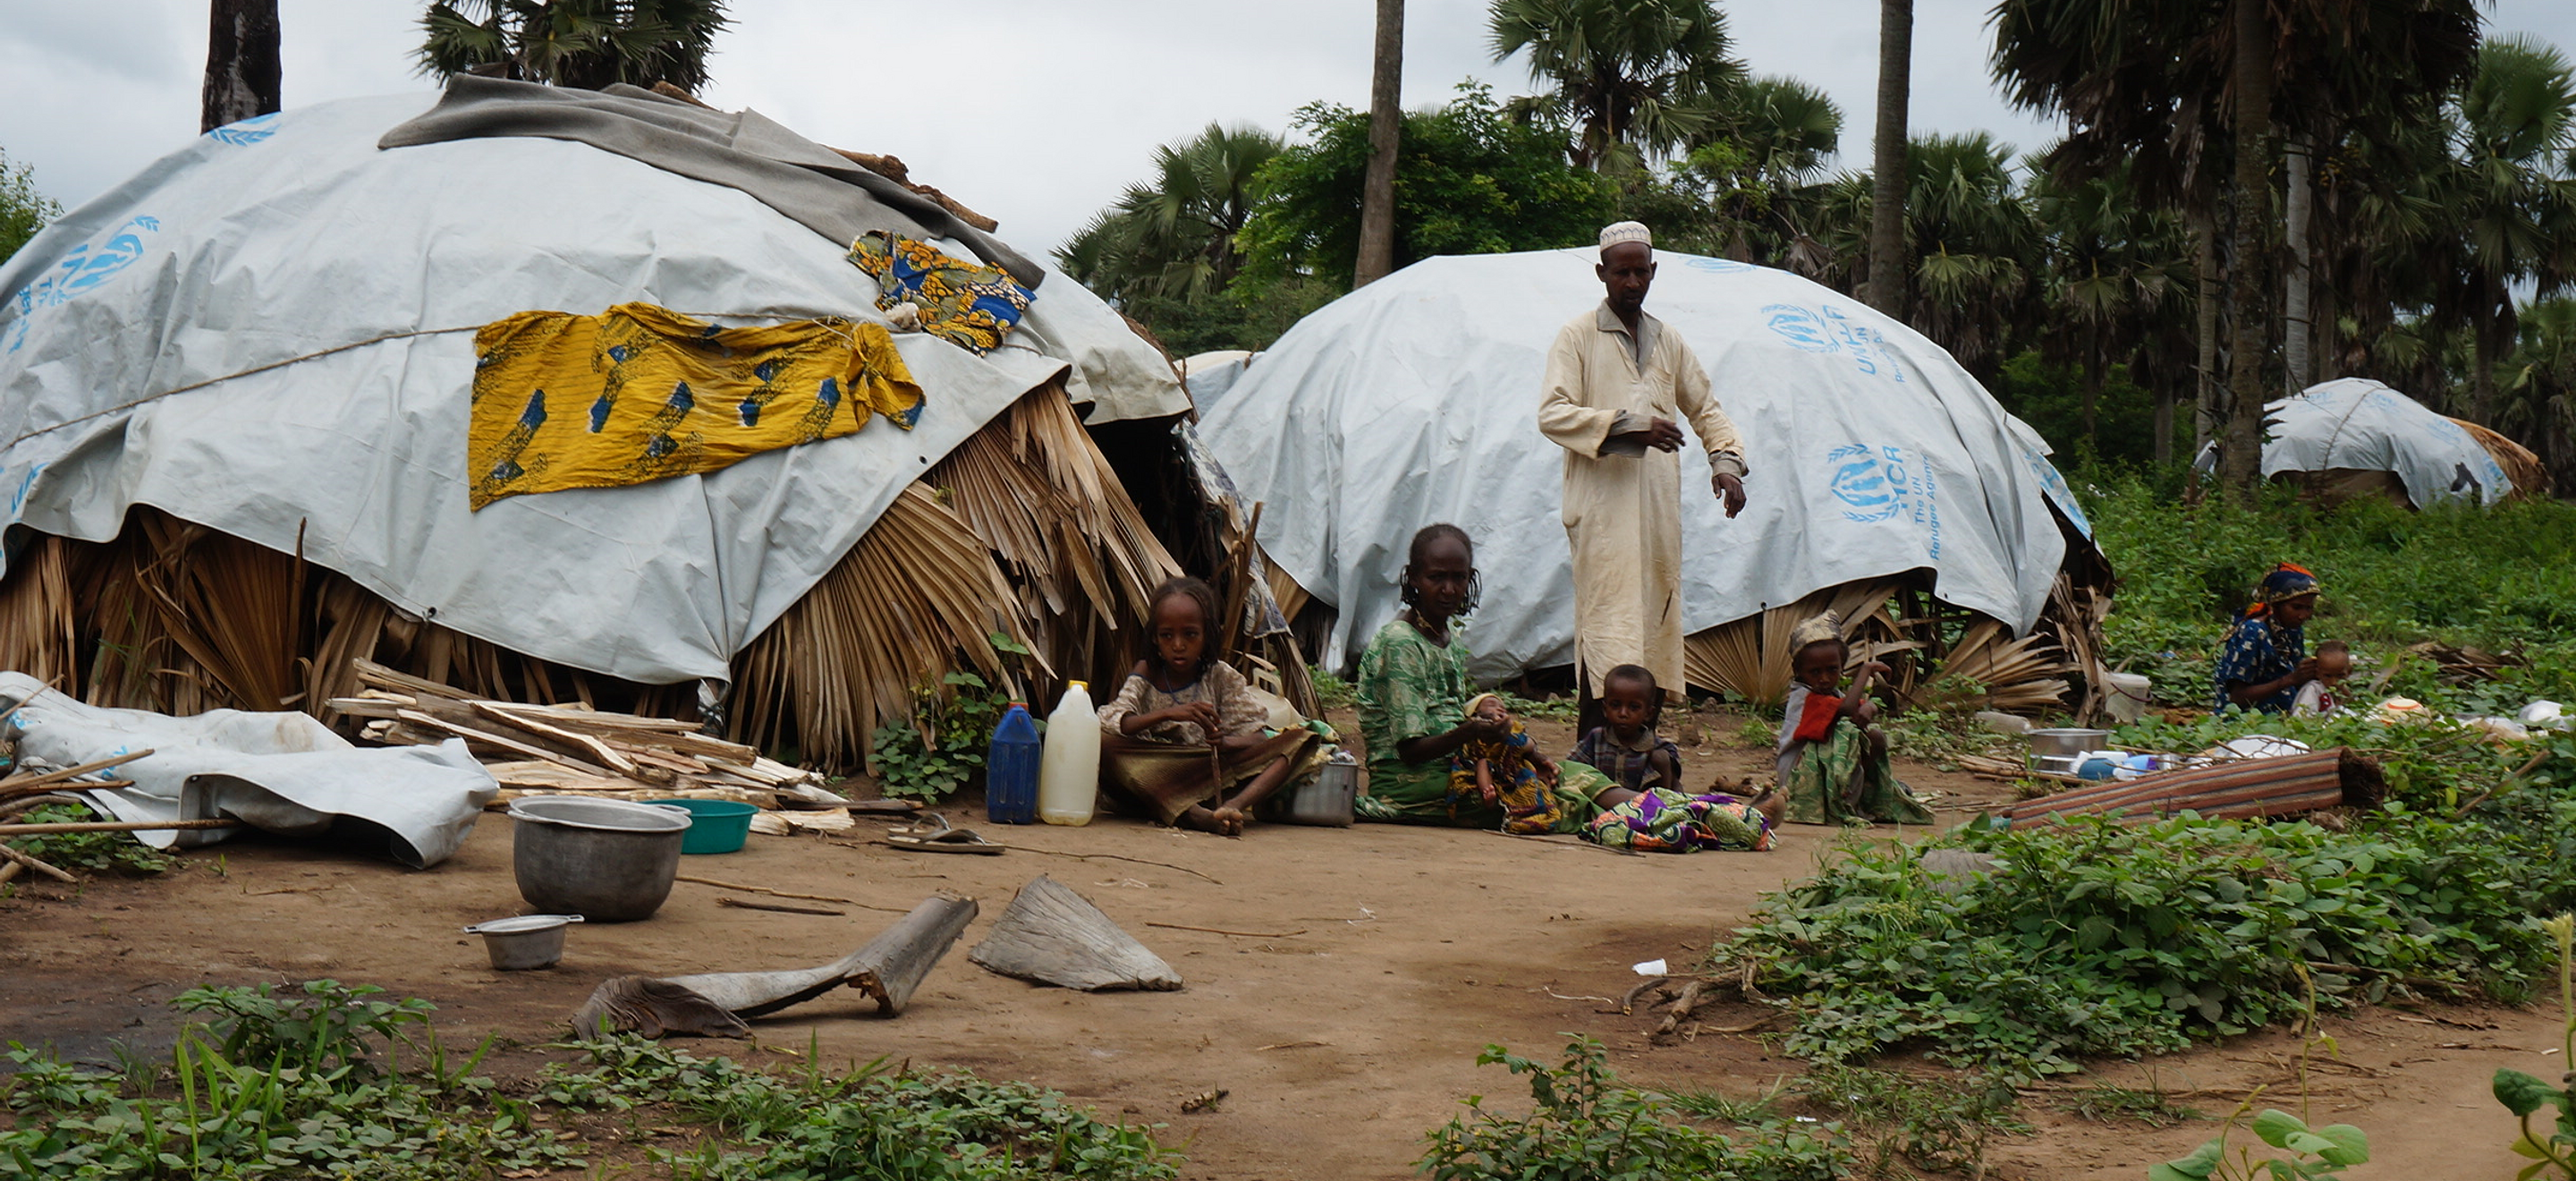 A group of six adults and children sit on the ground doing various tasks. Palm trees and tents are visible.